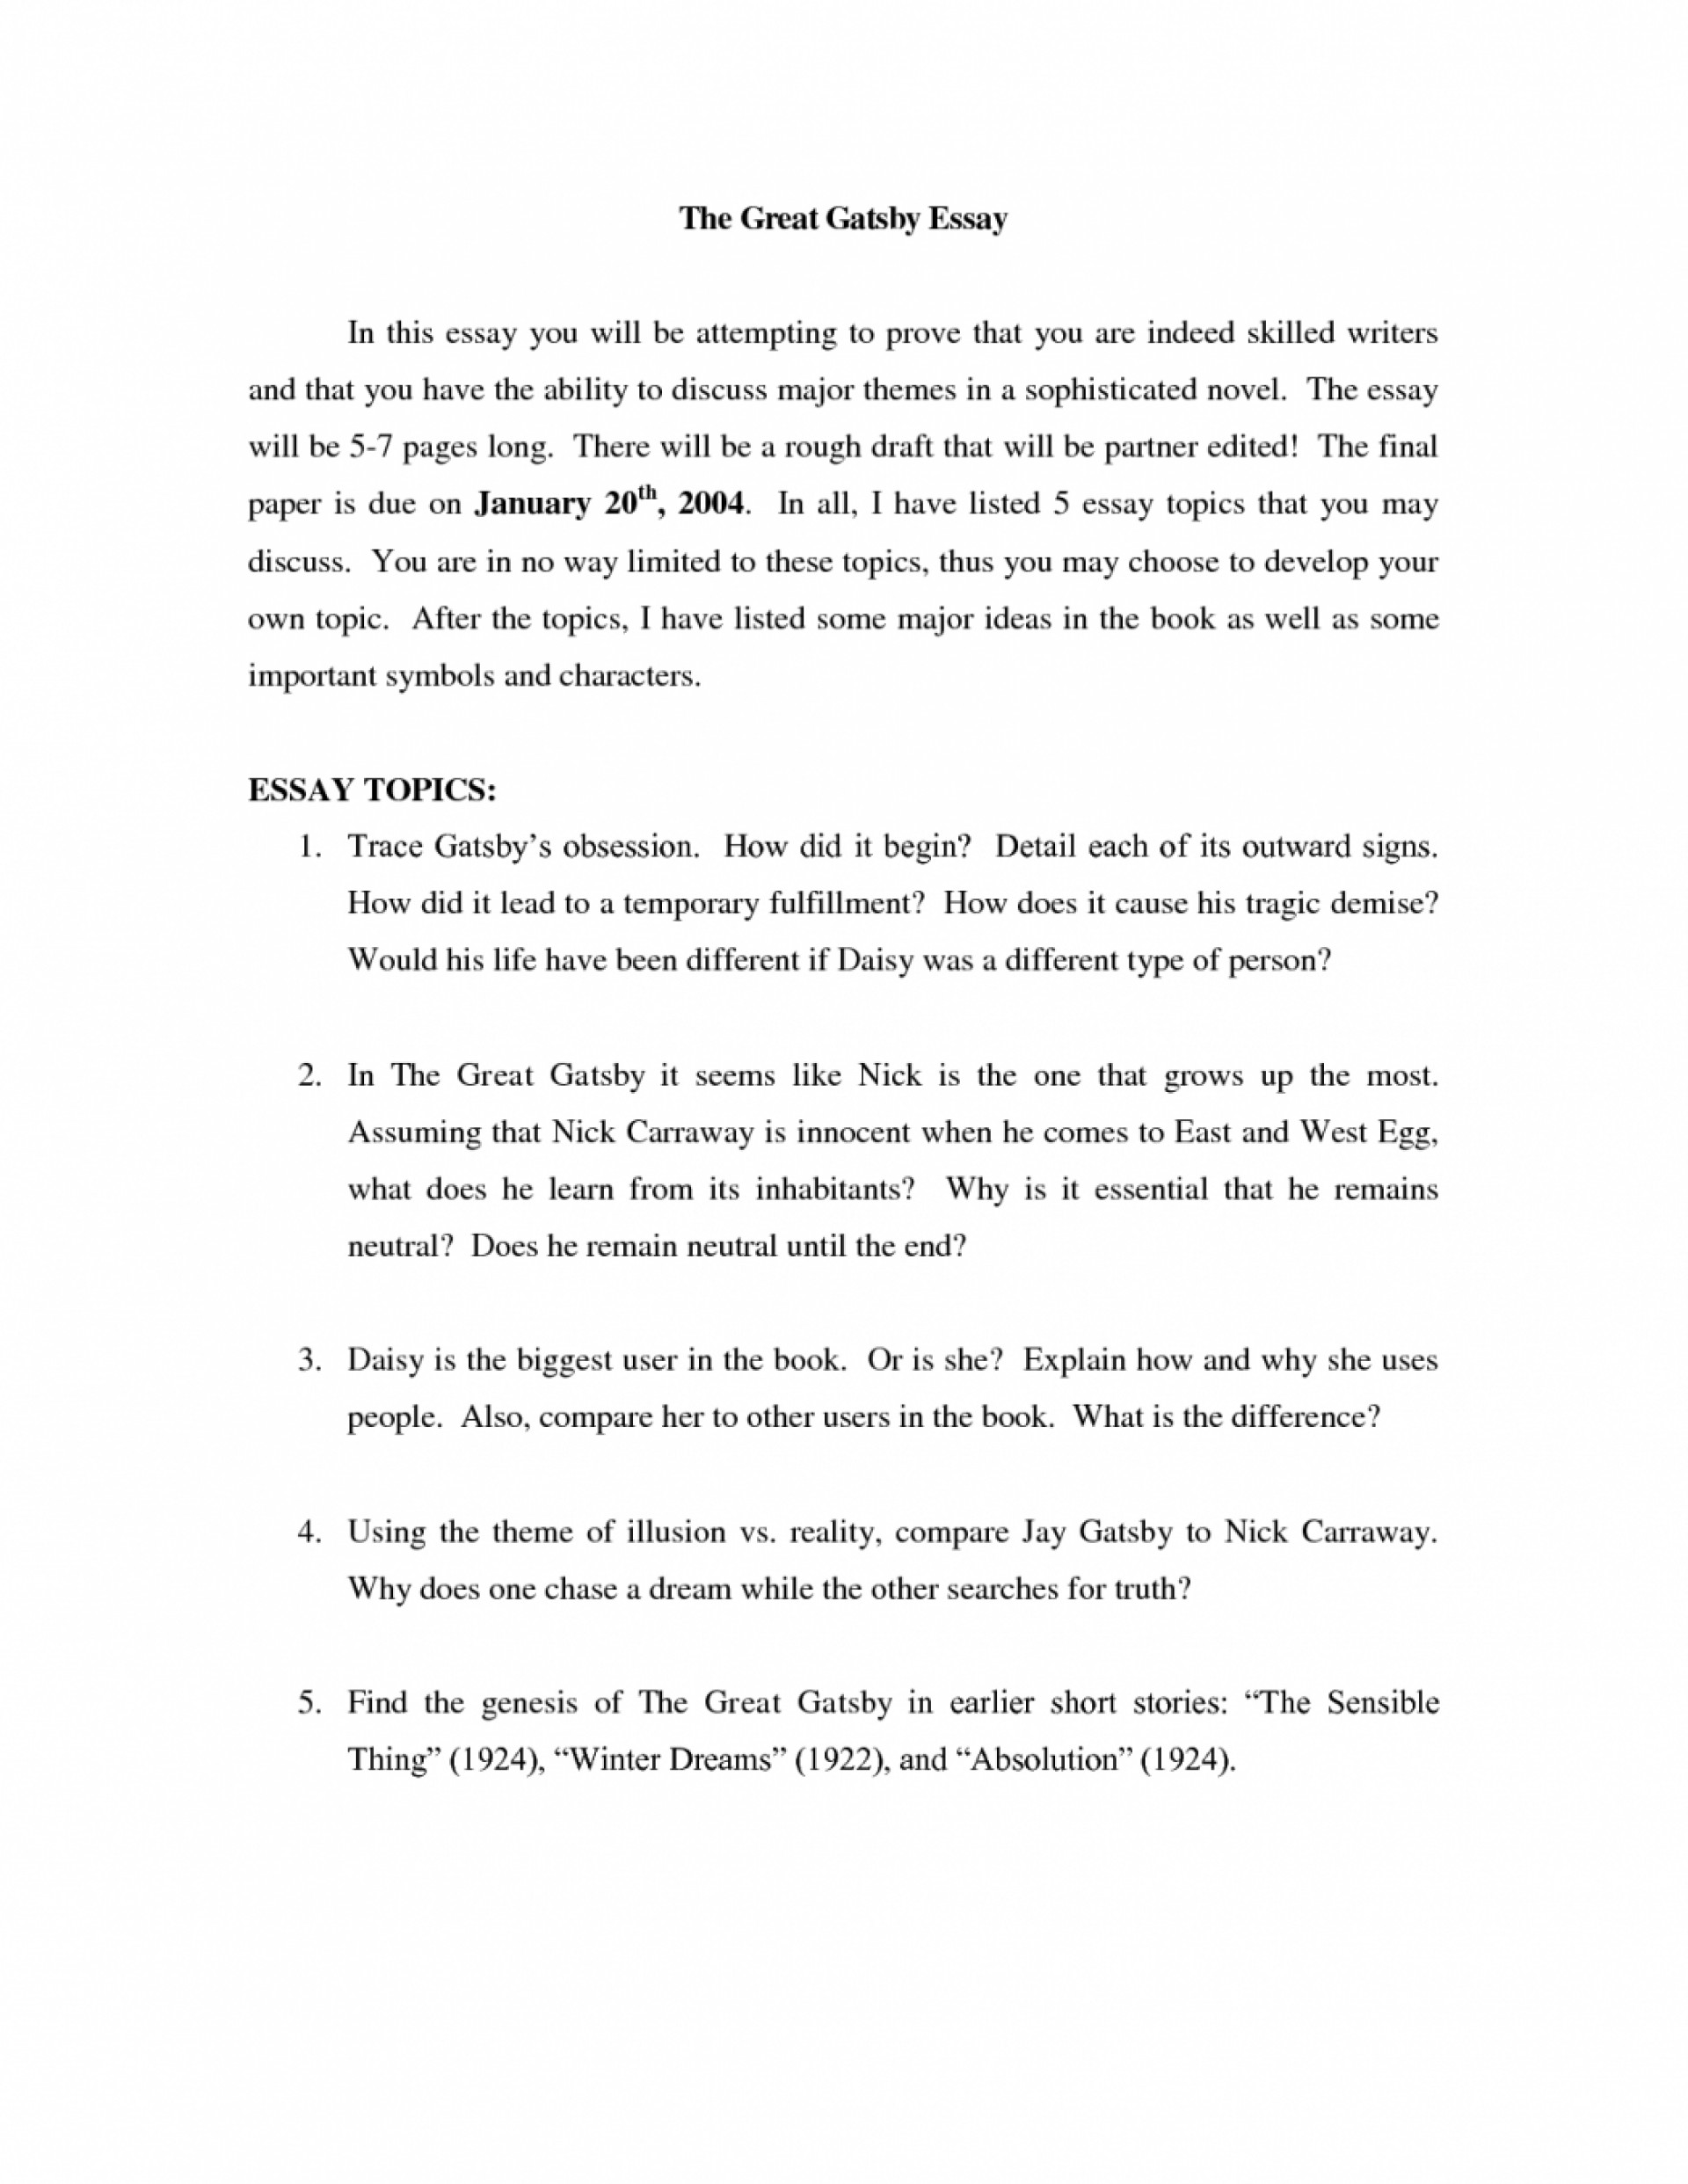 007 Essay Onrican Dream Great Gatsby Thesis The Future Is Still Possible Argumentative Statement For Template 4ni Attainable Argument Prompt Alive Research About Topics 1048x1356 Example Marvelous American Examples 1920